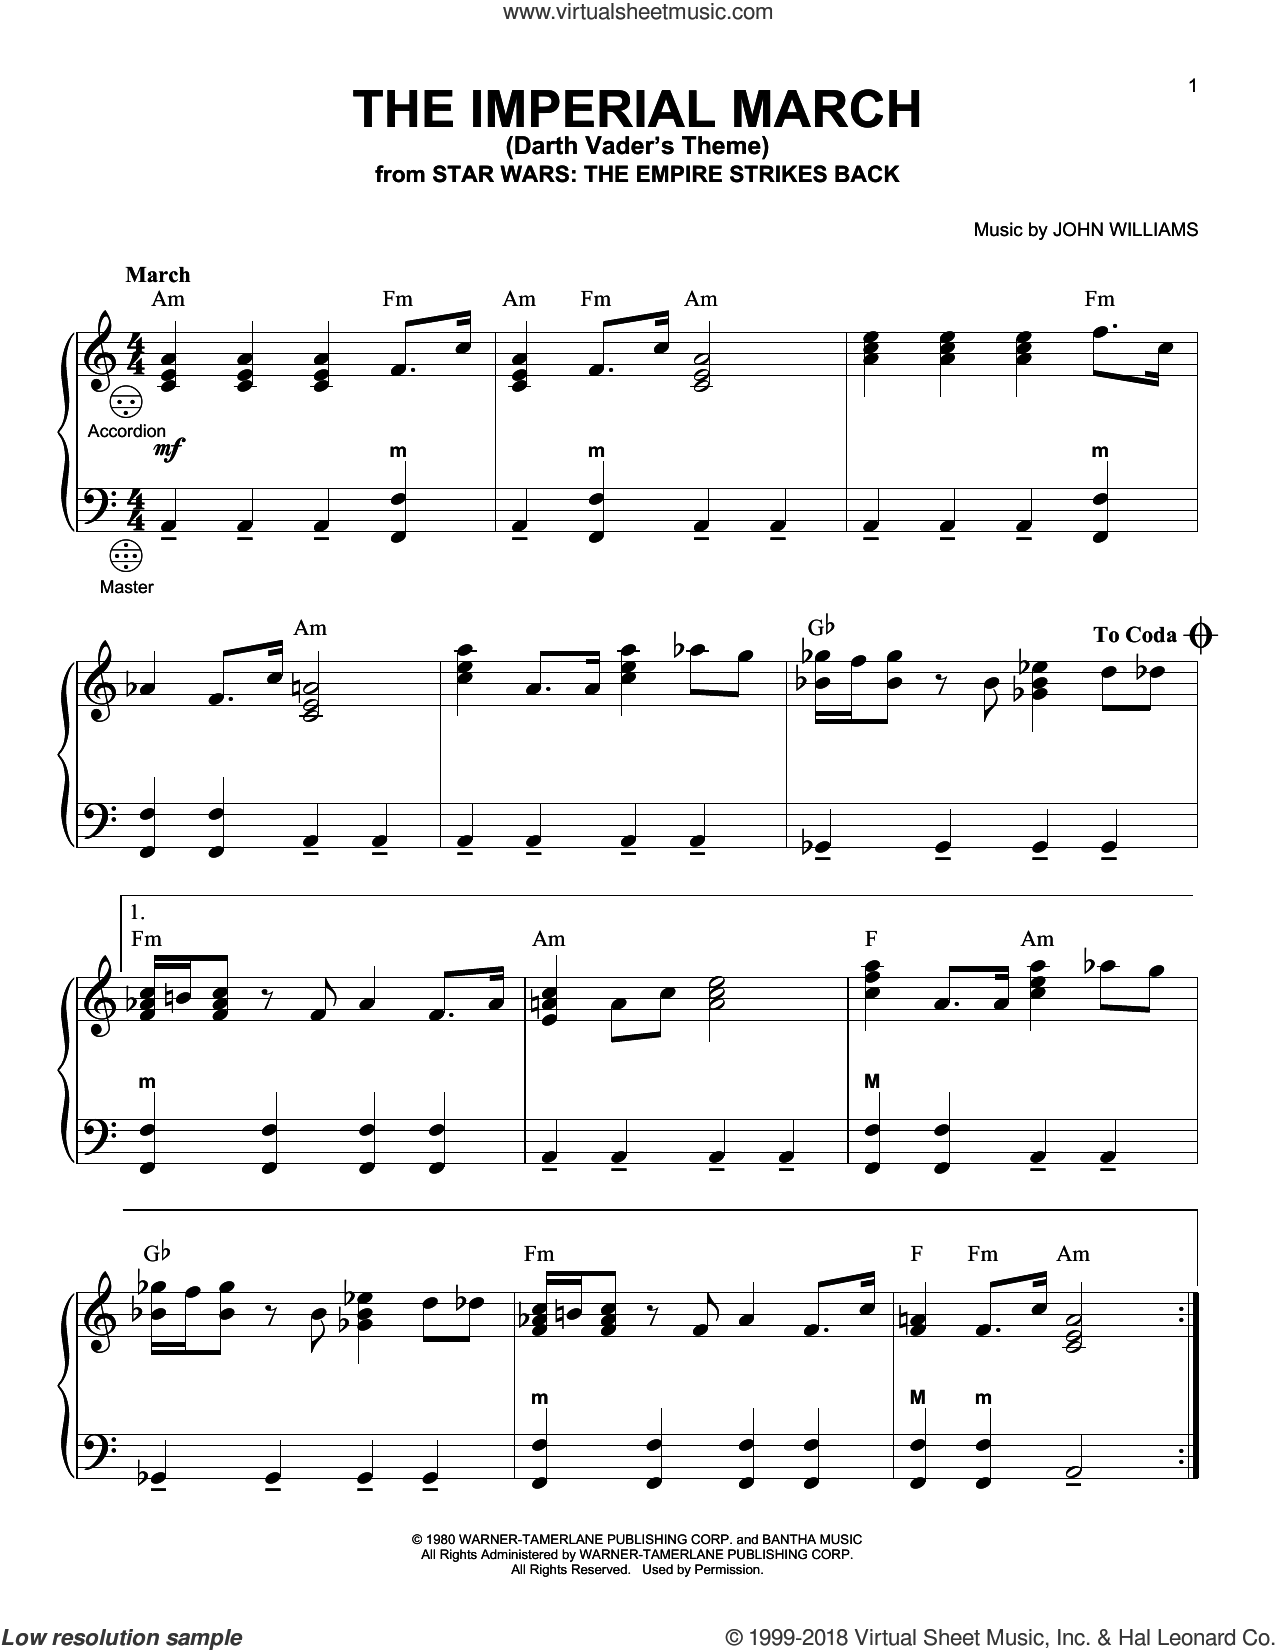 The Imperial March (Darth Vader's Theme) sheet music for accordion by John Williams, intermediate skill level